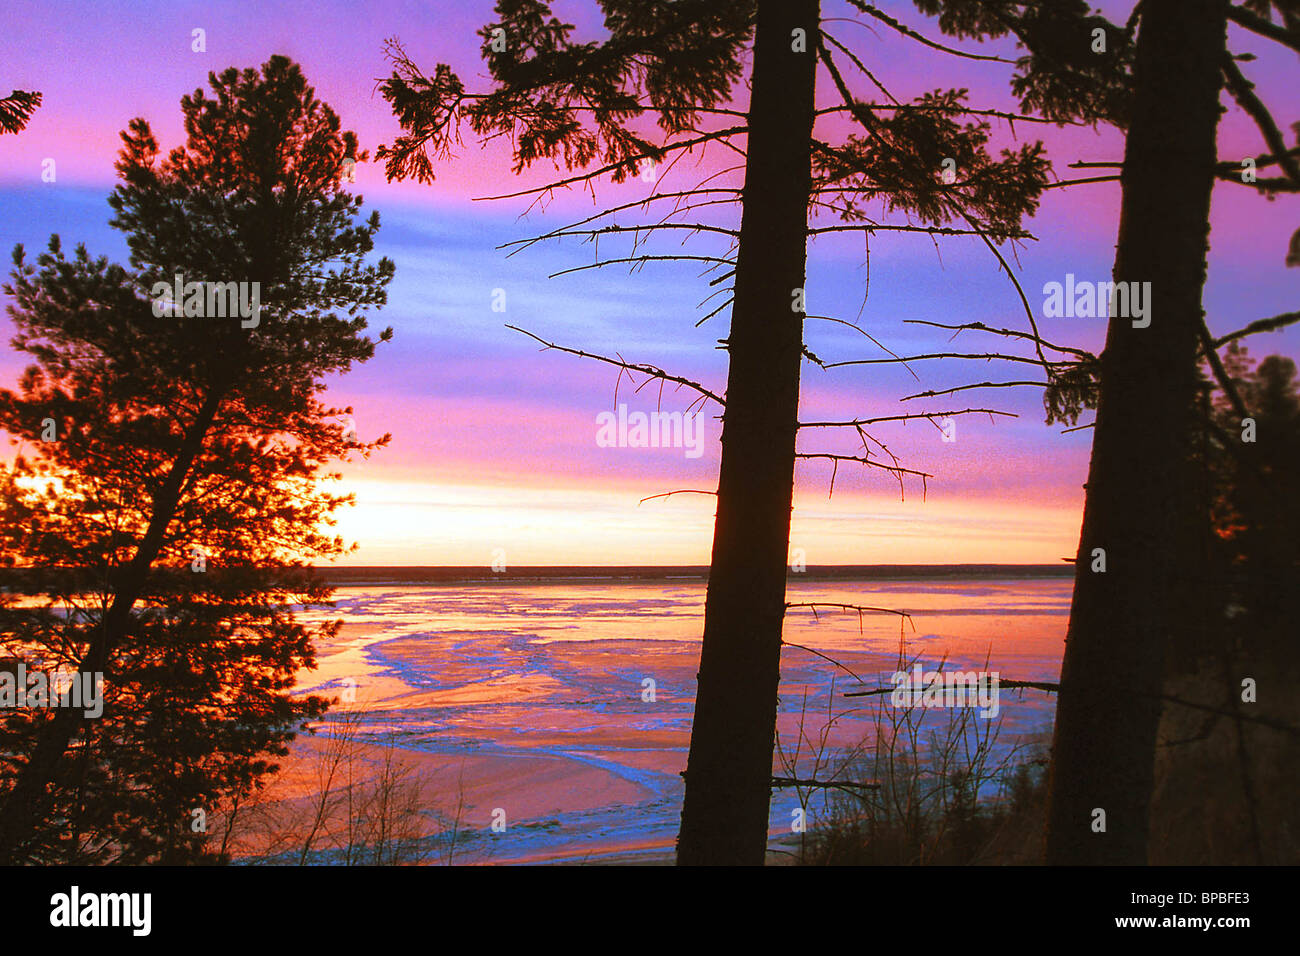 The fantastic colours of the sunset sky fascinate the eyes - Stock Image